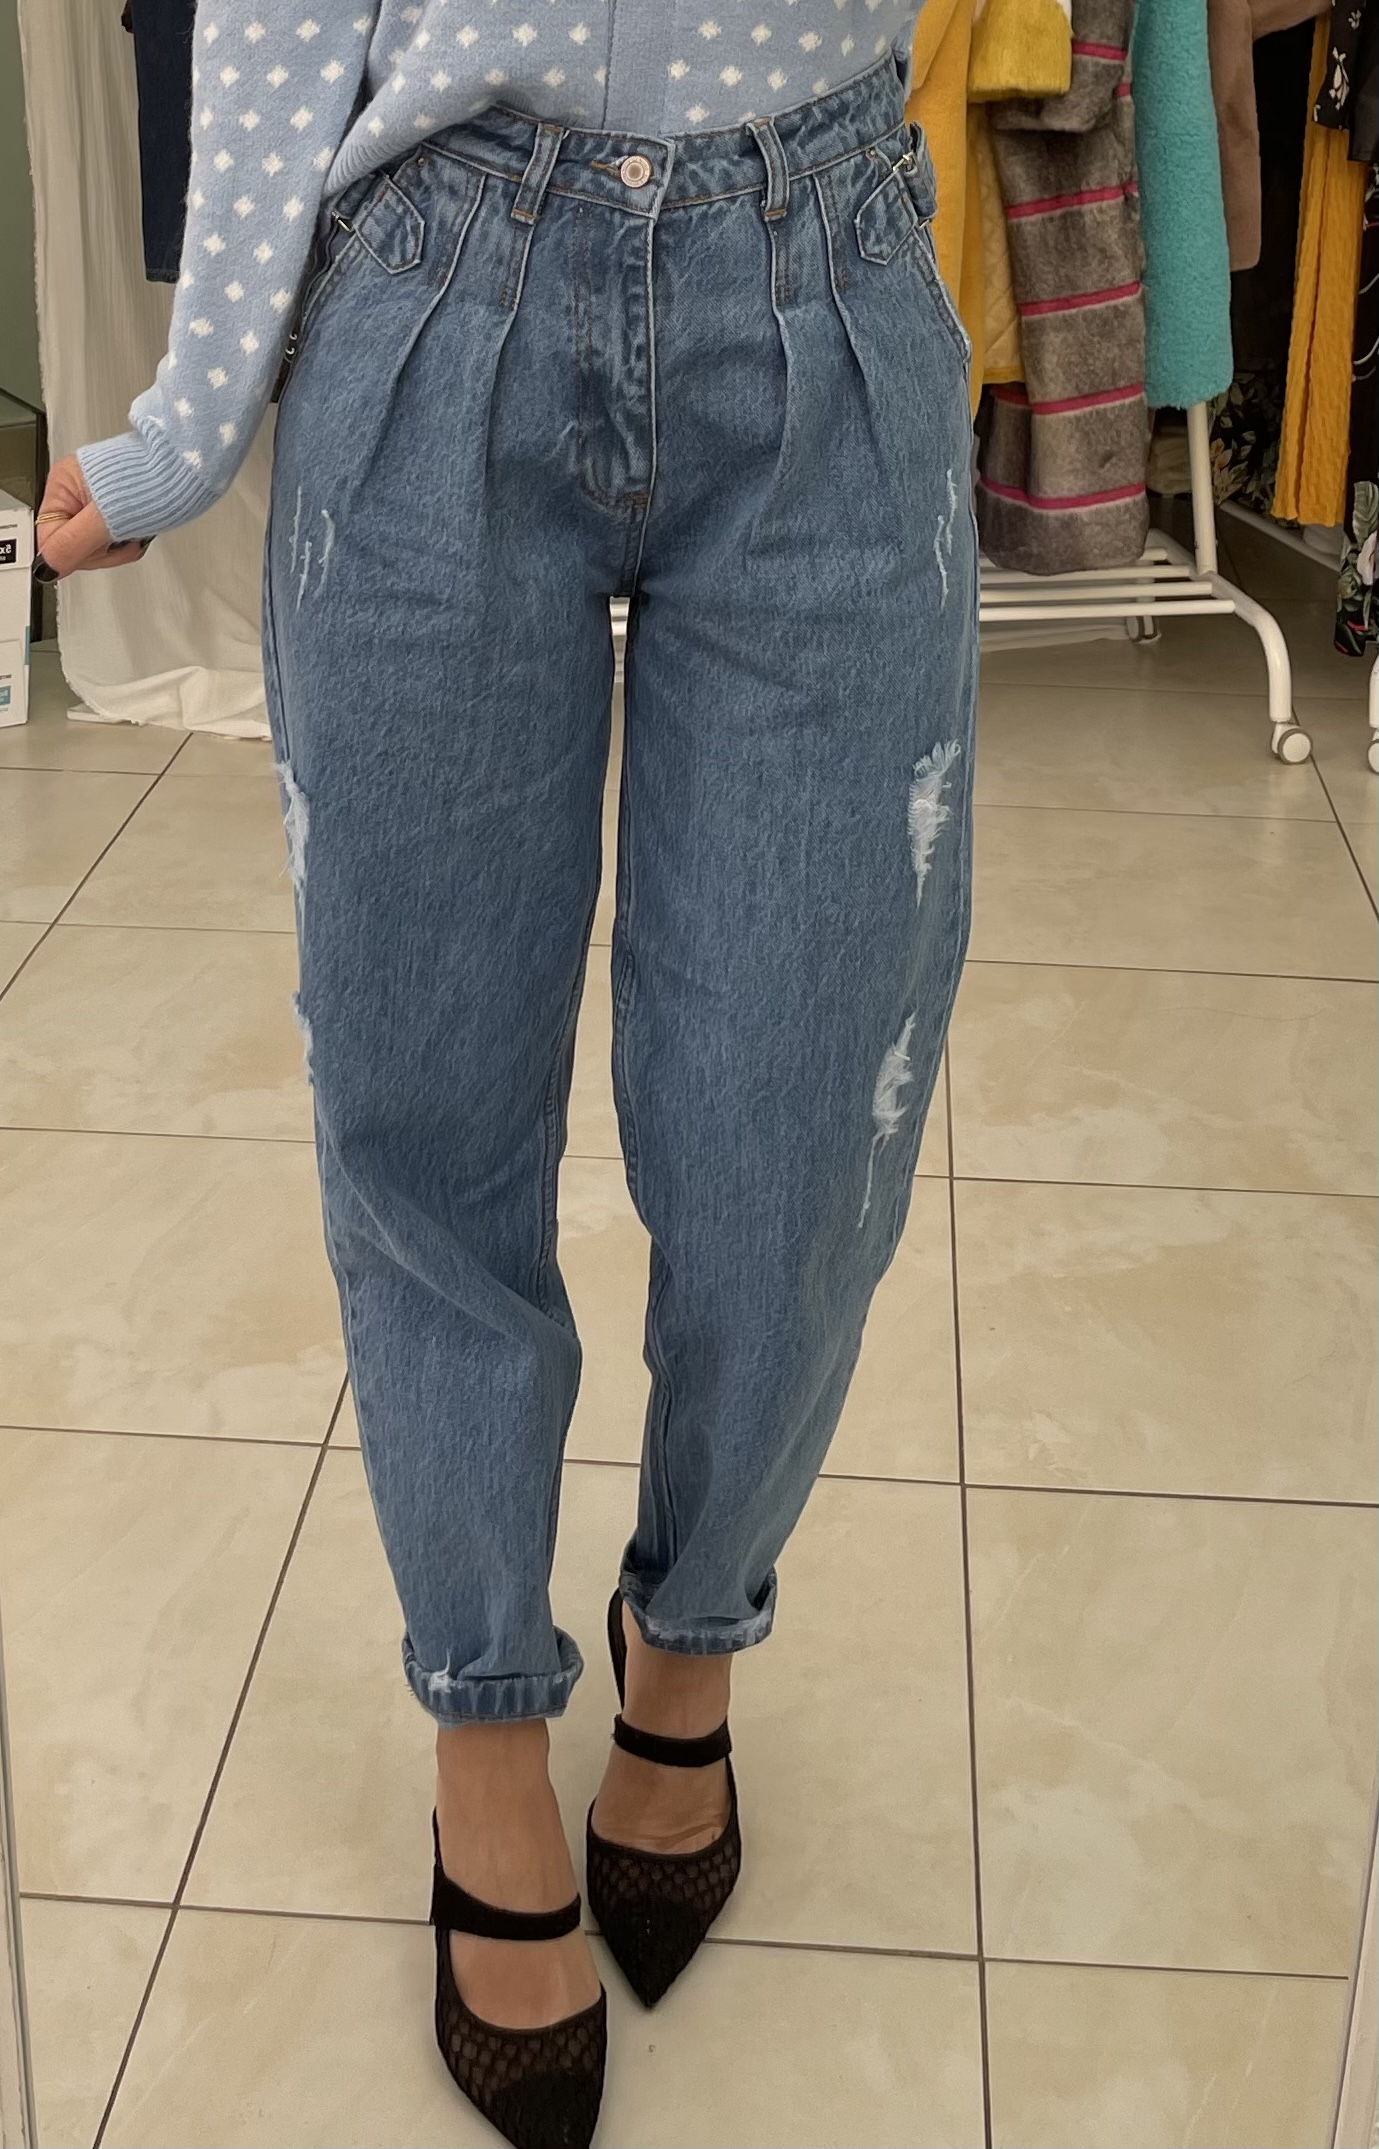 Mom's Fit Jeans II